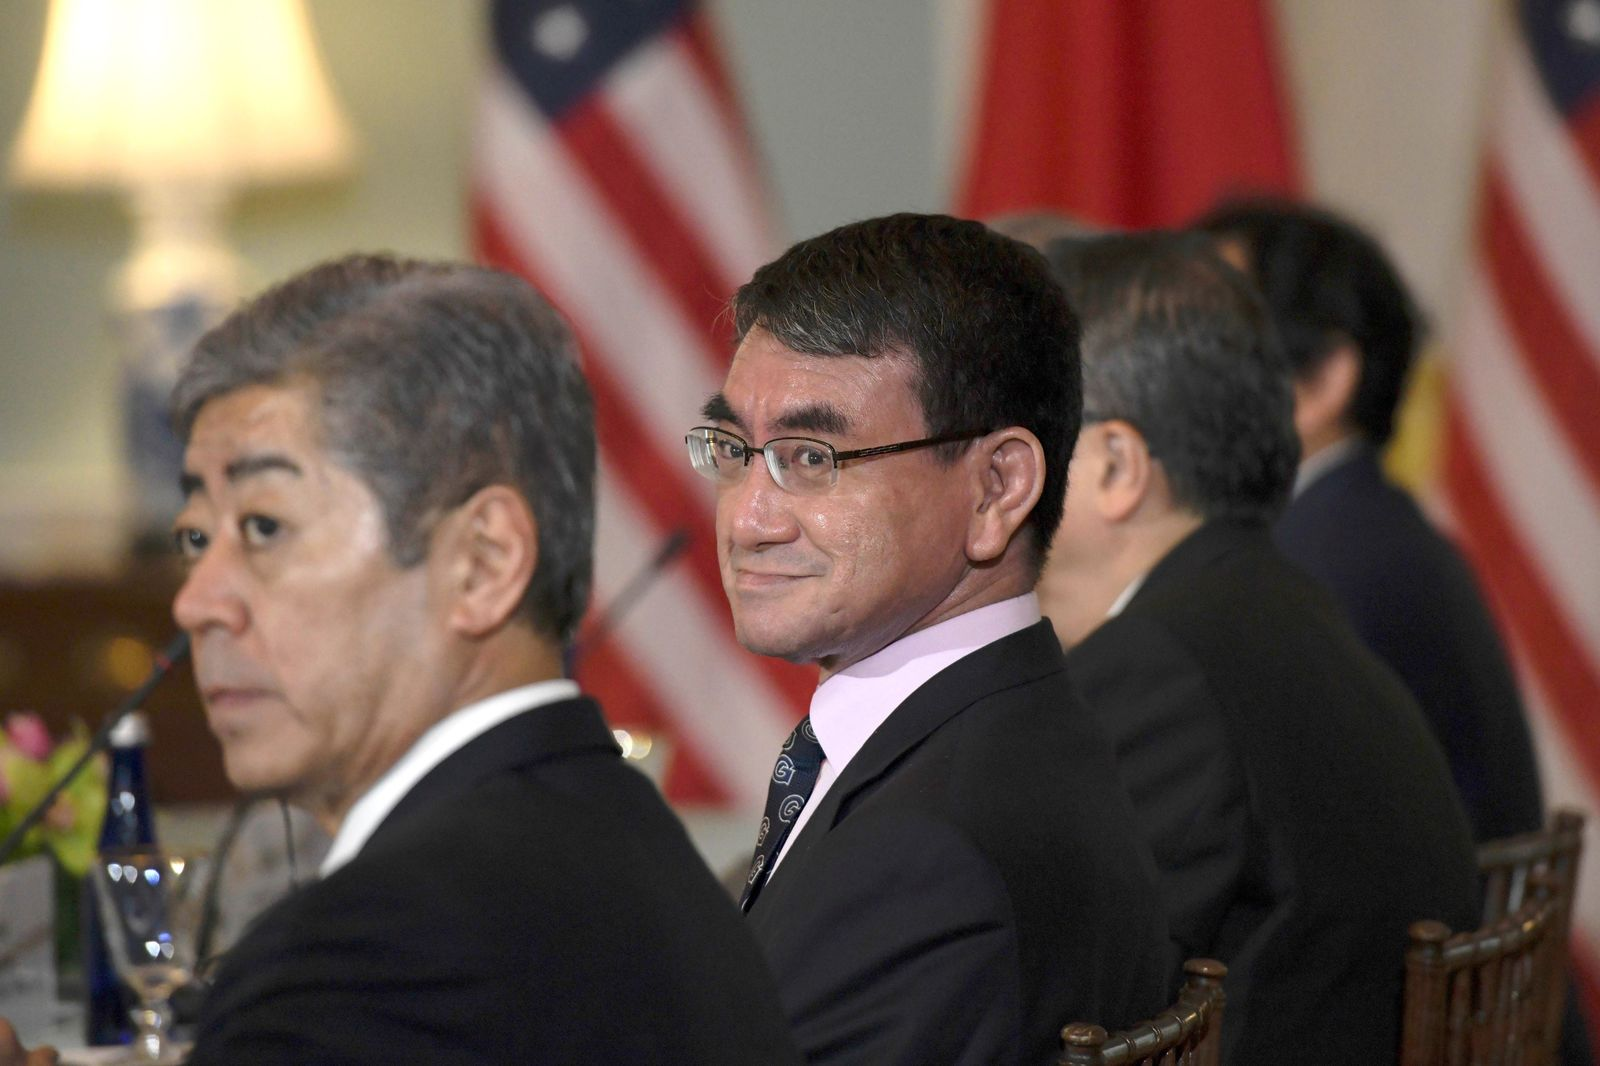 Japanese Foreign Minister Taro Kono, right, and Defense Minister Takeshi Iwaya, left, meet with Secretary of State Mike Pompeo and acting Secretary of Defense Patrick Shanahan on Friday, April 19, 2019, at the Department of State in Washington. (AP Photo/Sait Serkan Gurbuz)